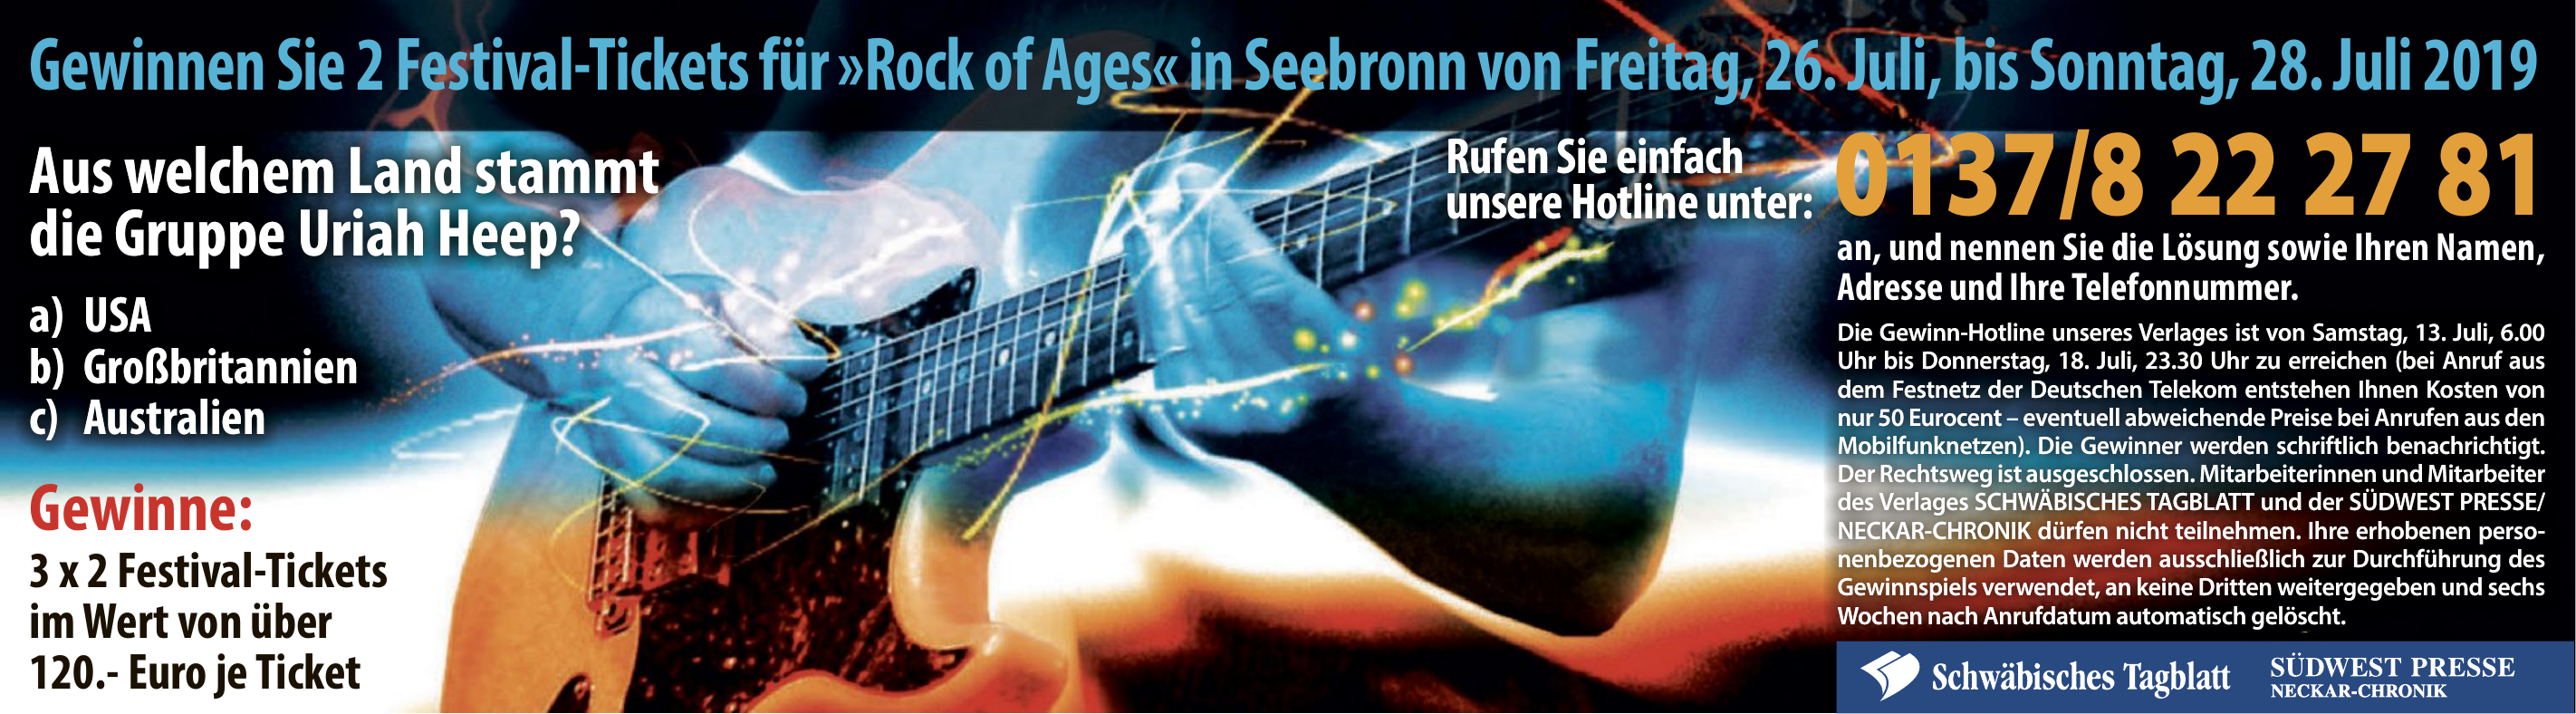 2 Festival-Tickets für »Rock of Ages« in Seebronn